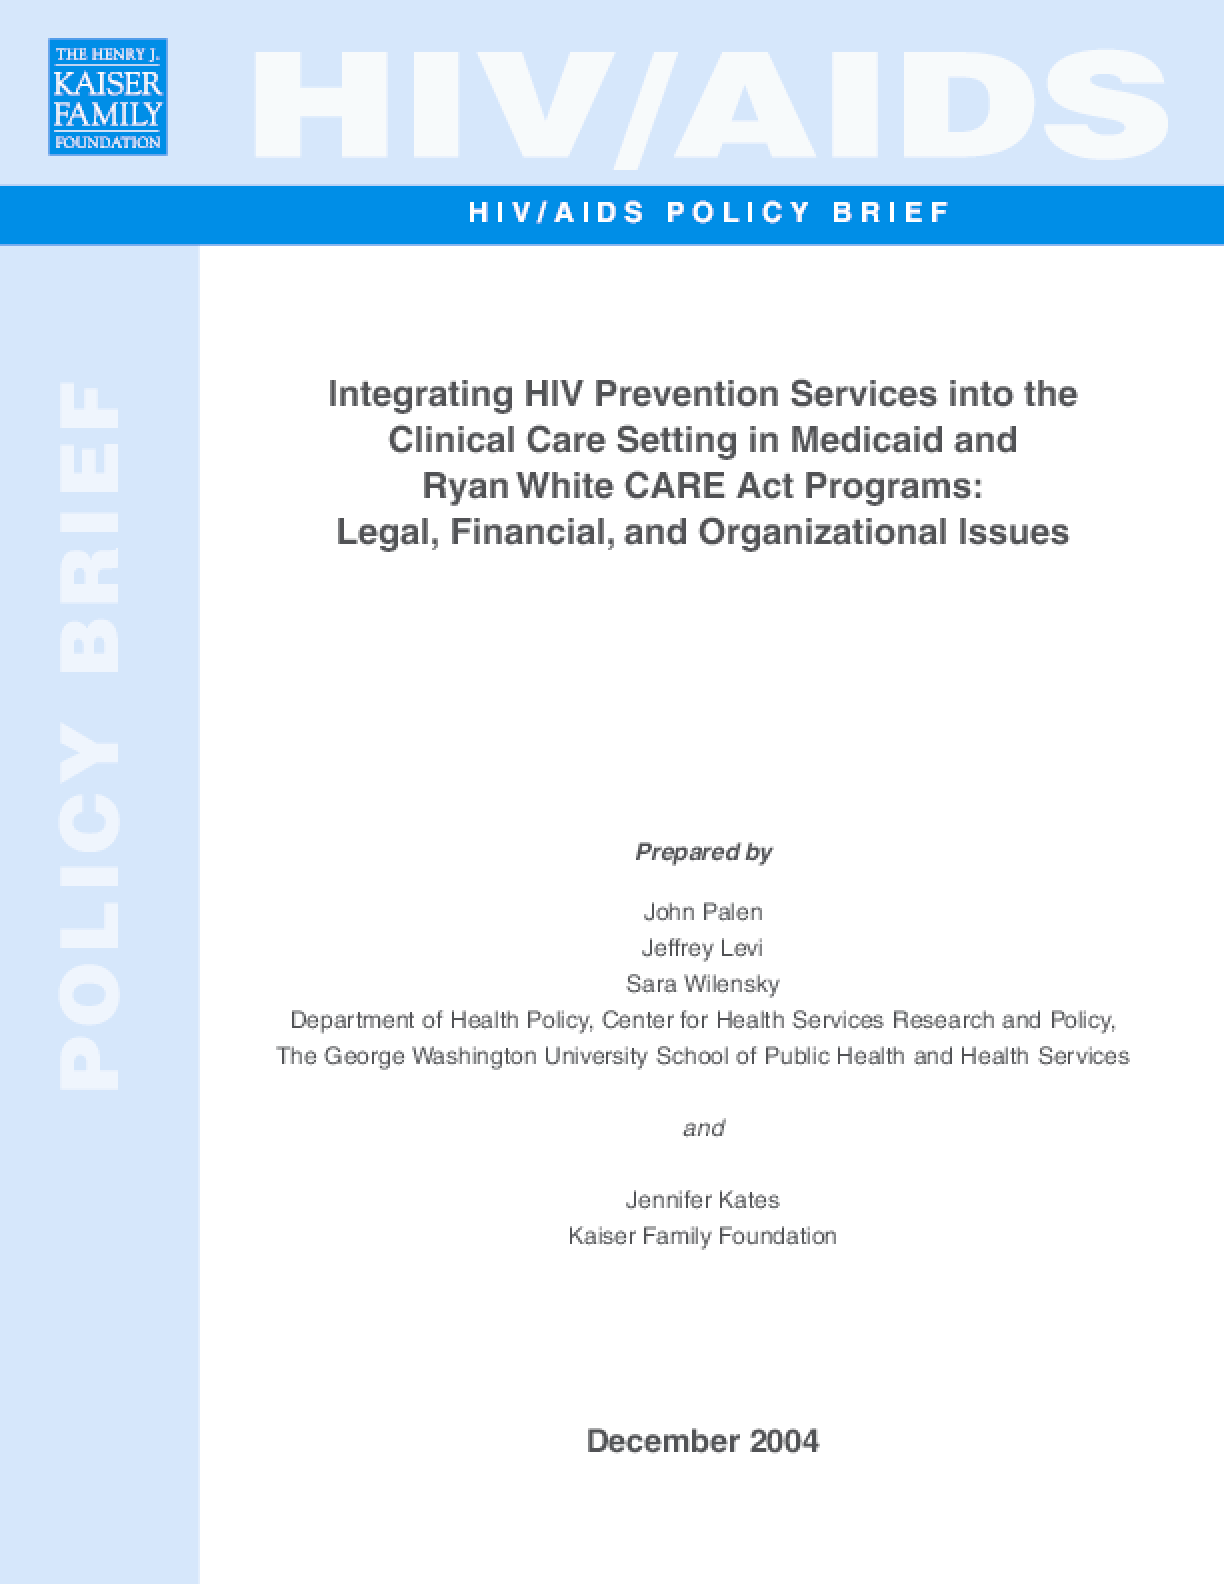 Integrating HIV Prevention Services Into the Clinical Care Setting in Medicaid and Ryan White CARE Act Programs: Legal, Financial, and Organizational Issues